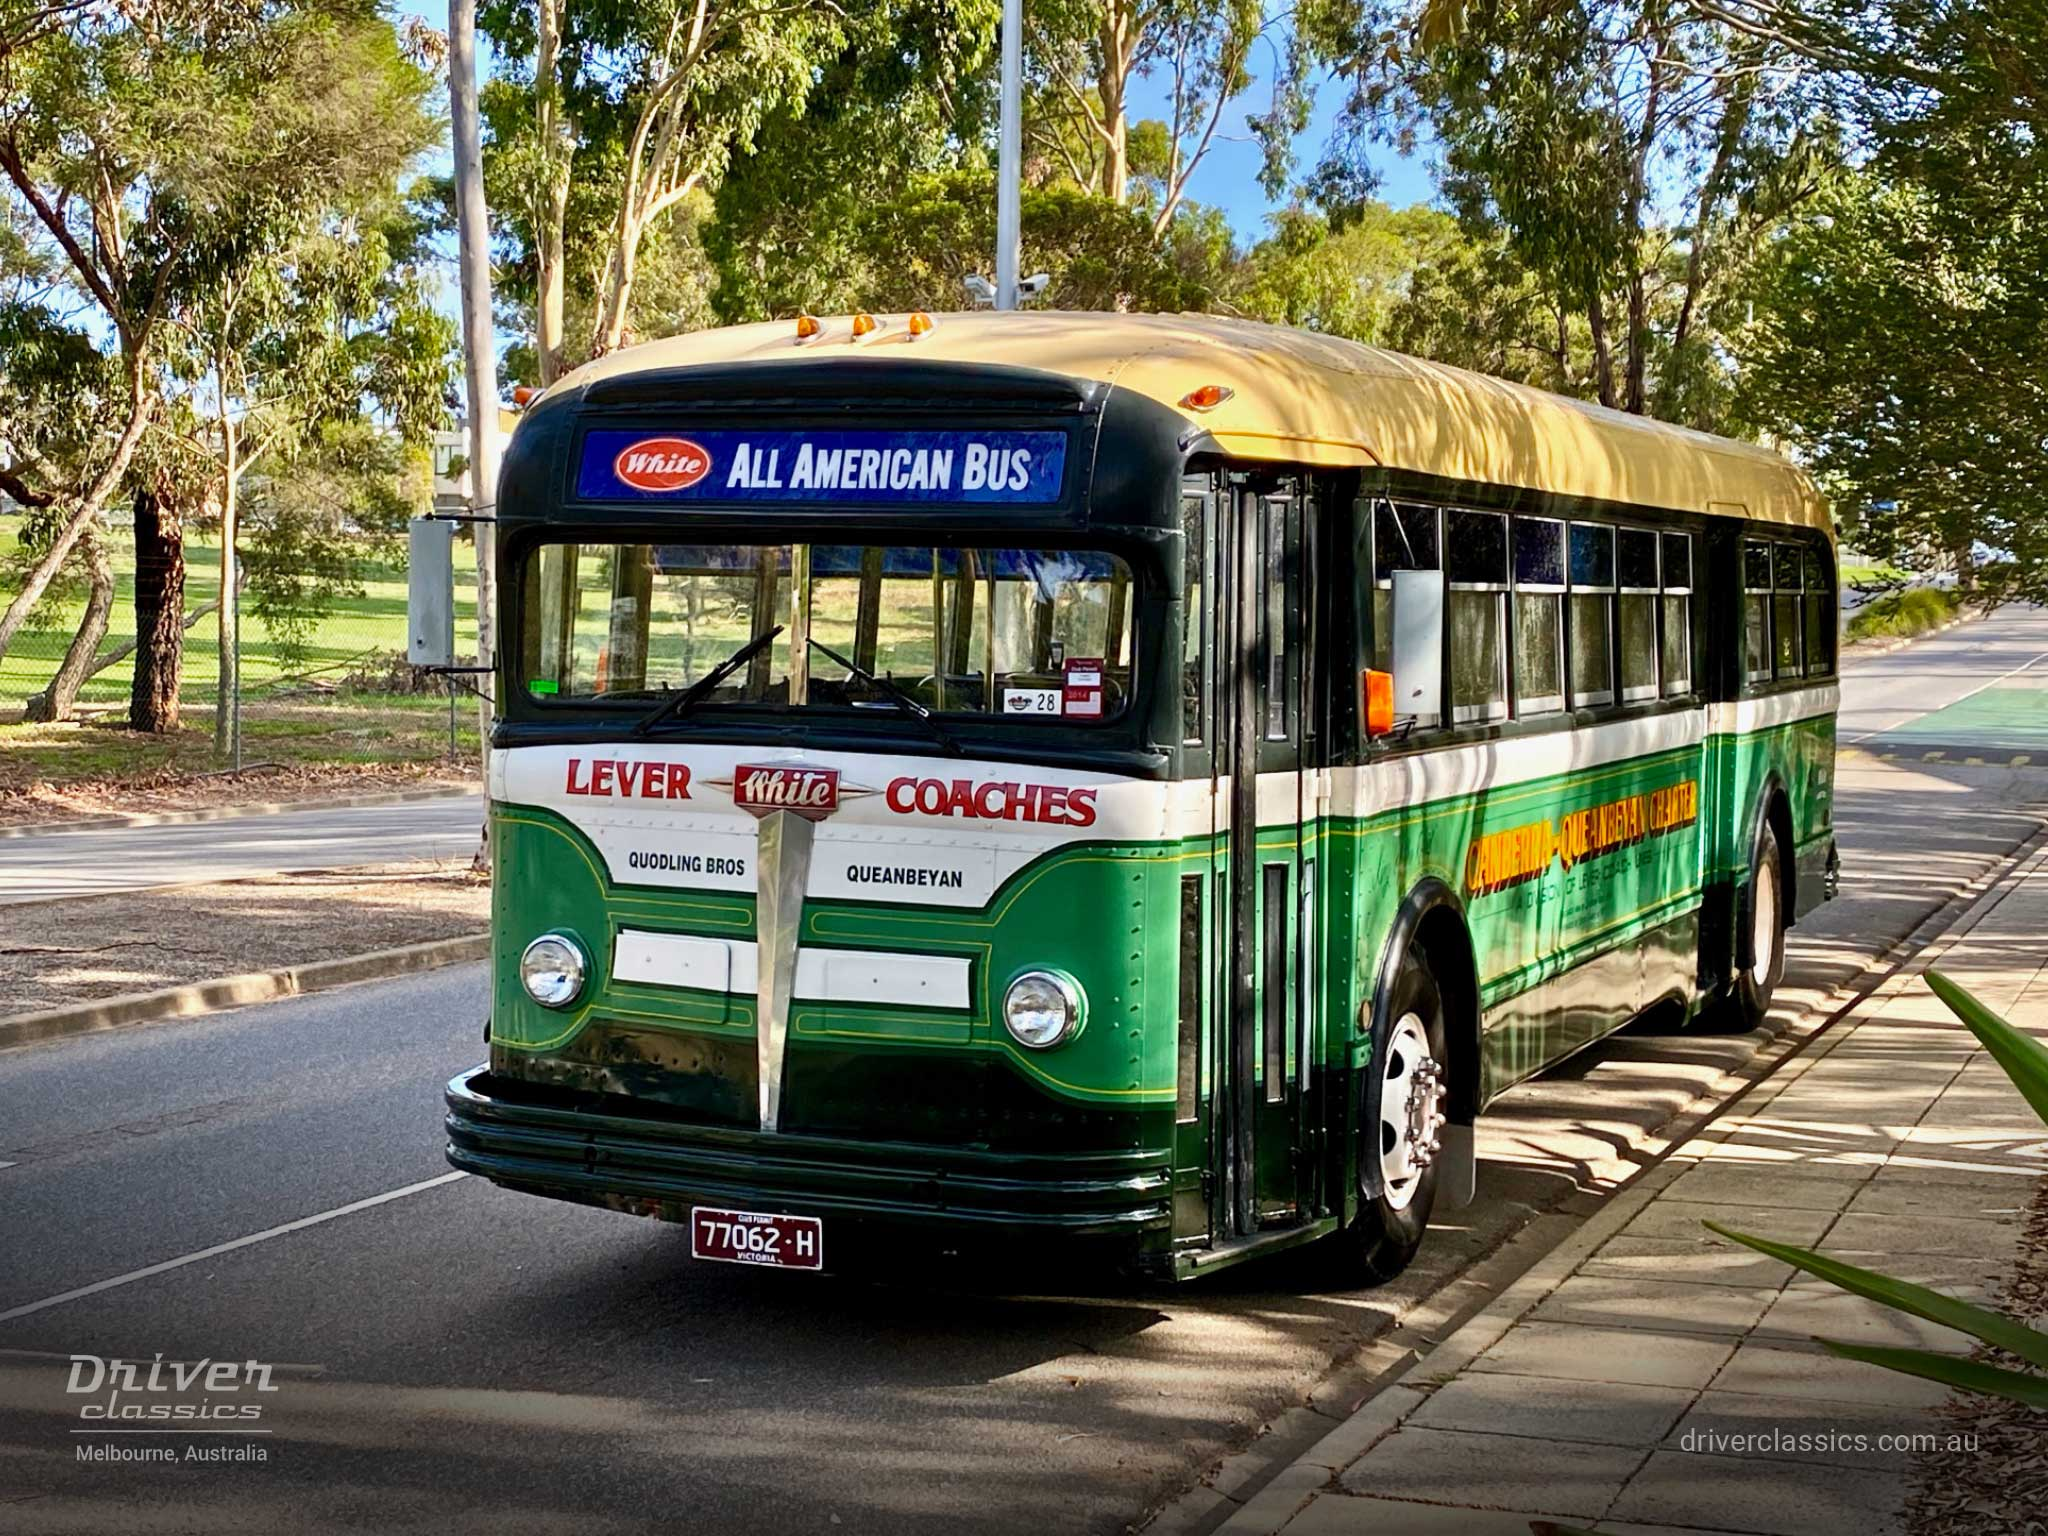 1948 White 798-12 bus, Front and Side (door side), Jells Park VIC, Photo Taken January 2020